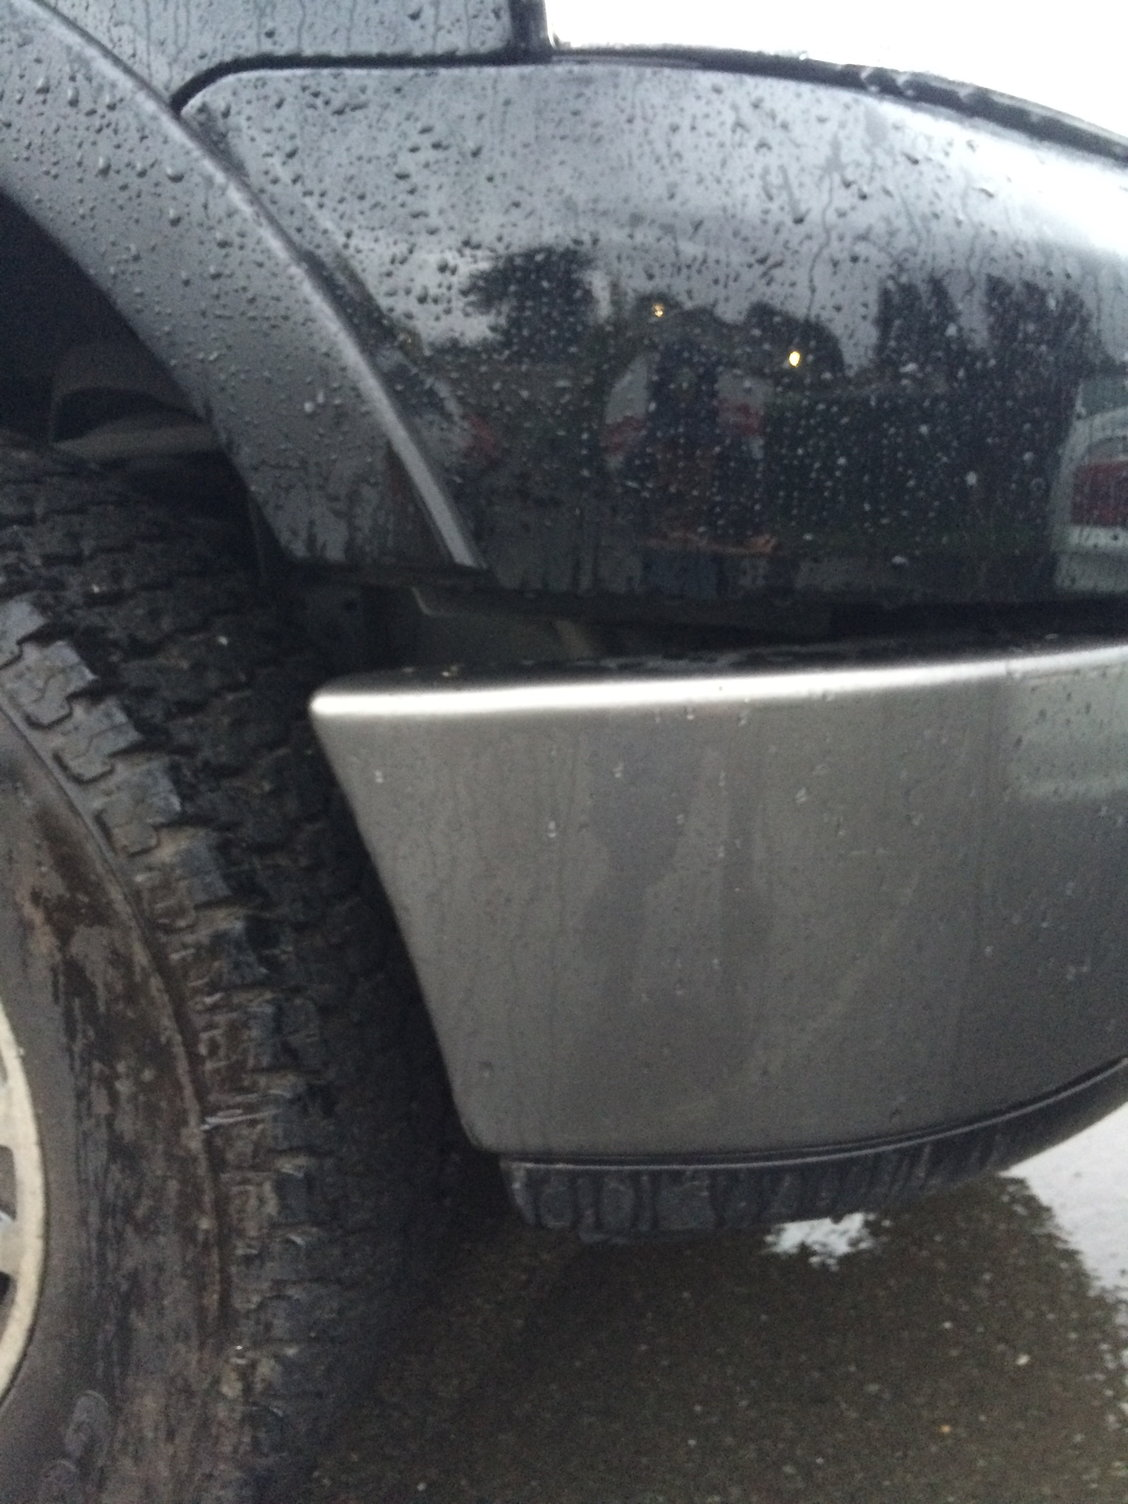 Troubleshooting Knocking noise - Ford F150 Forum - Community